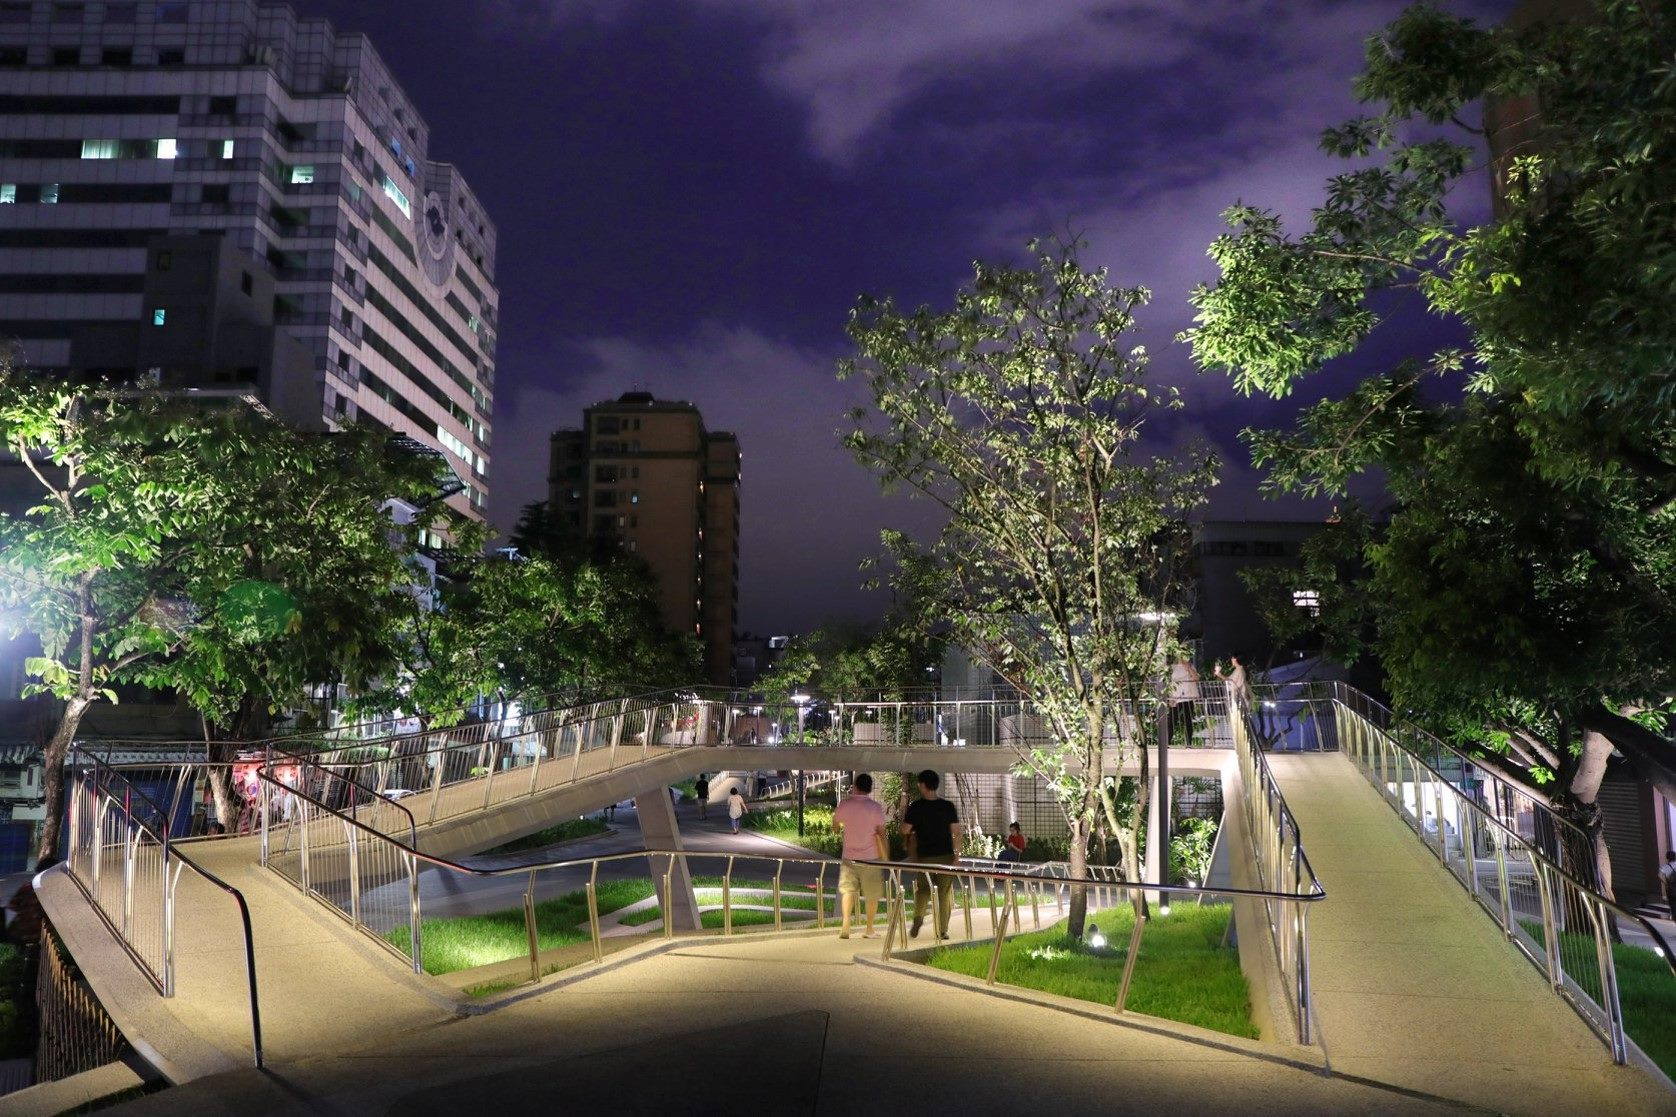 The Xinzhongshan Linear Park by night